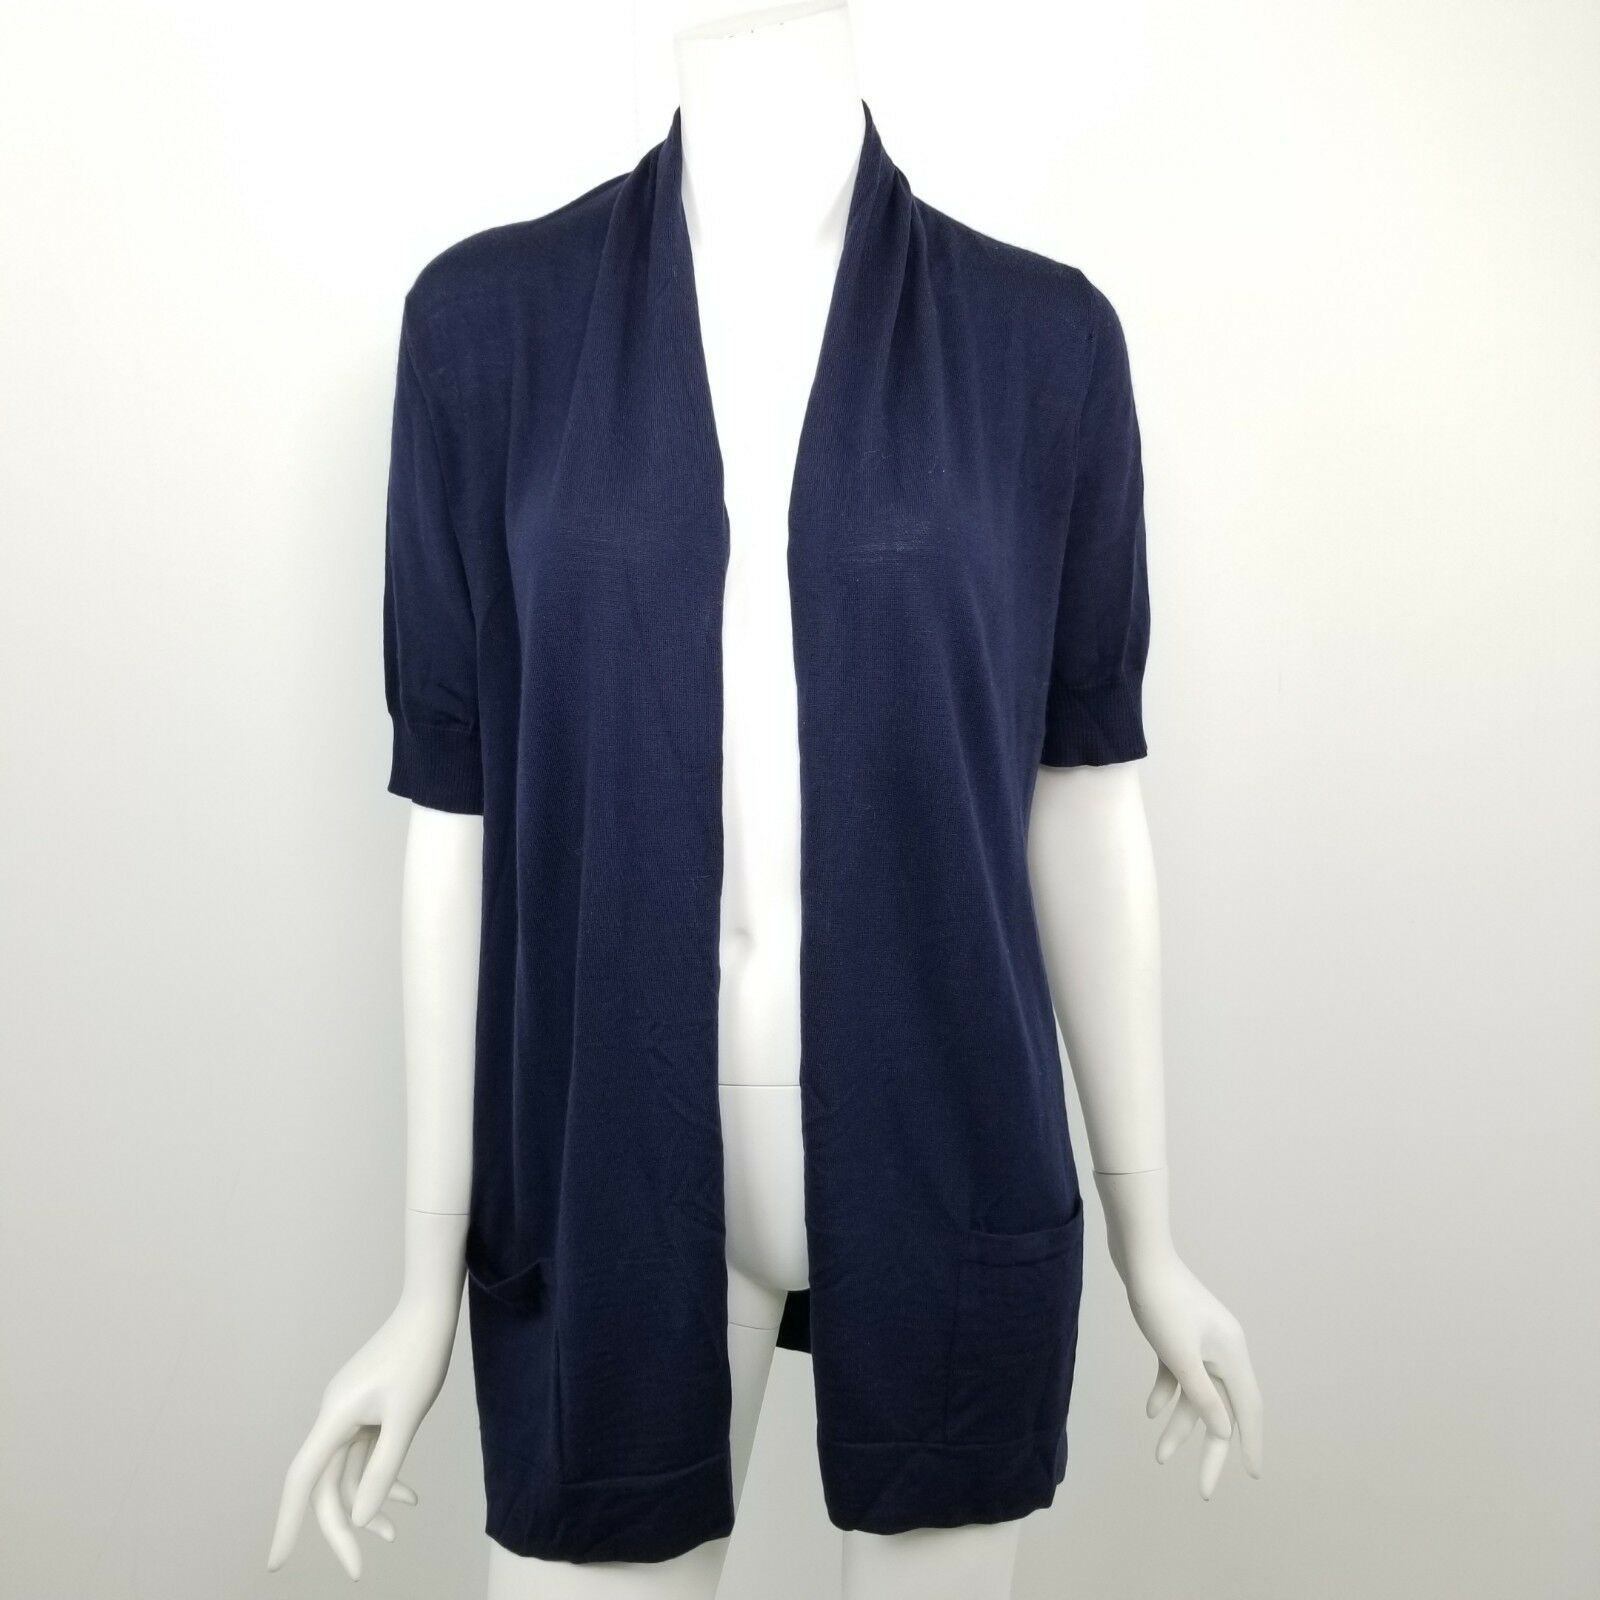 Theory Theory Theory Cardigan Sweater Womens Size Large Adiel Wool Short Sleeve Navy bluee f7a96c